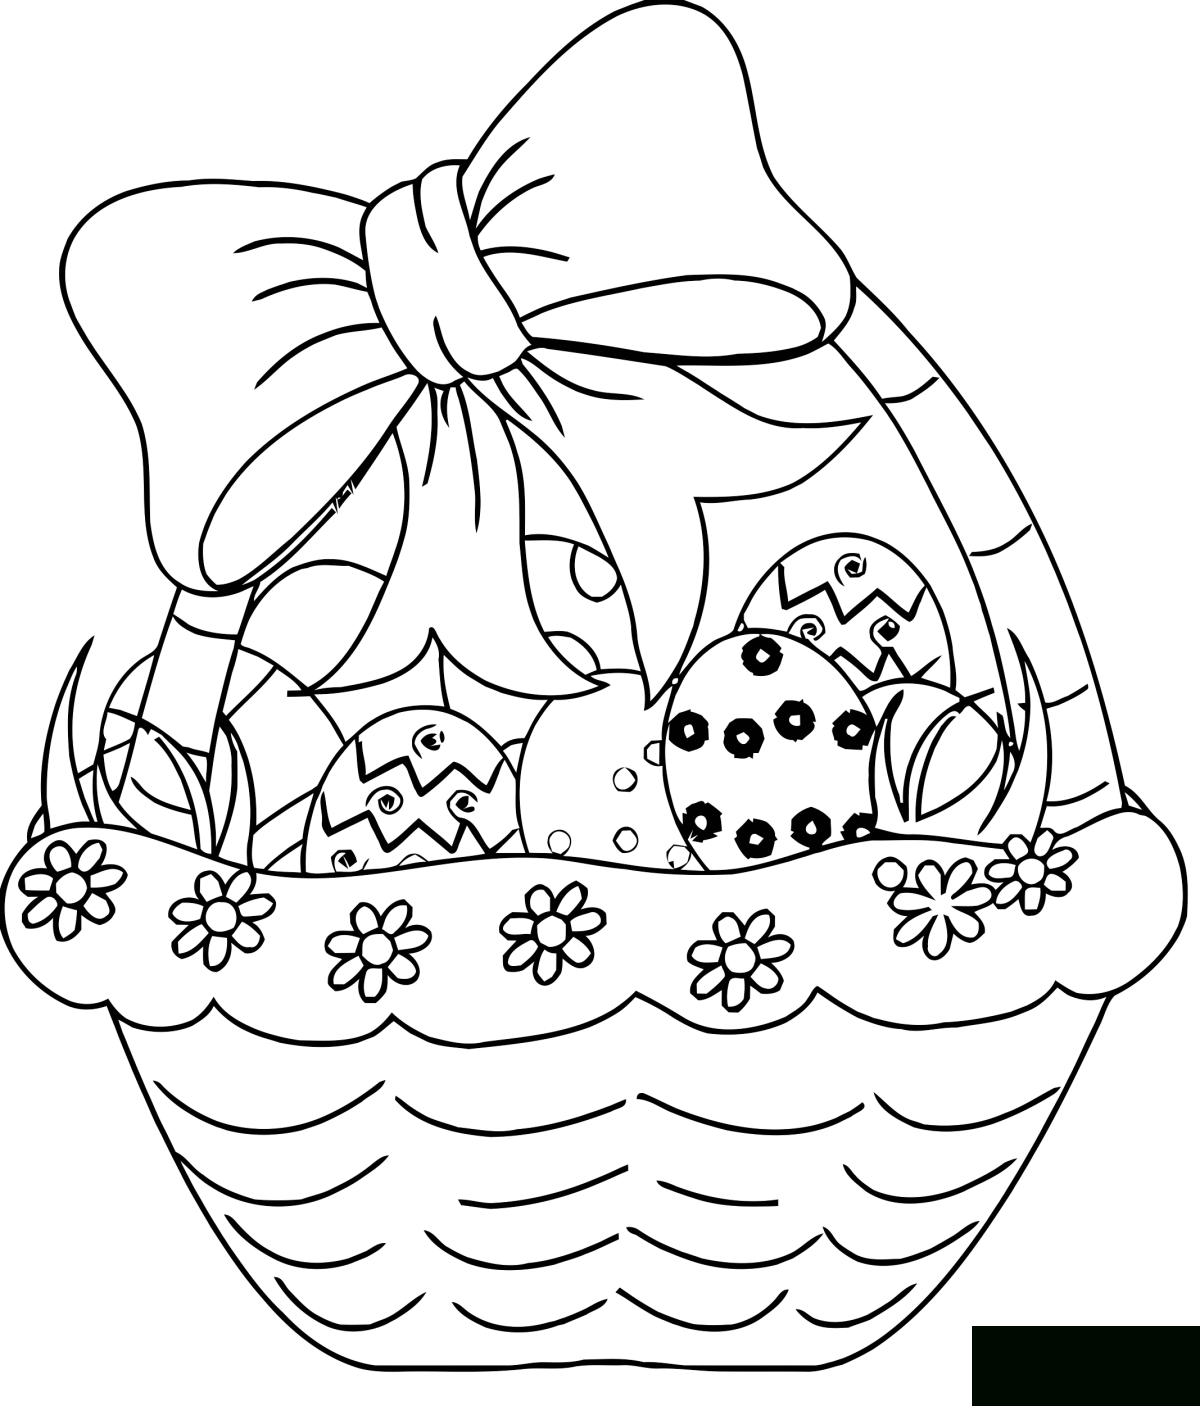 Easter For Kids - Easter Kids Coloring Pages dedans Coloriage Chocolat